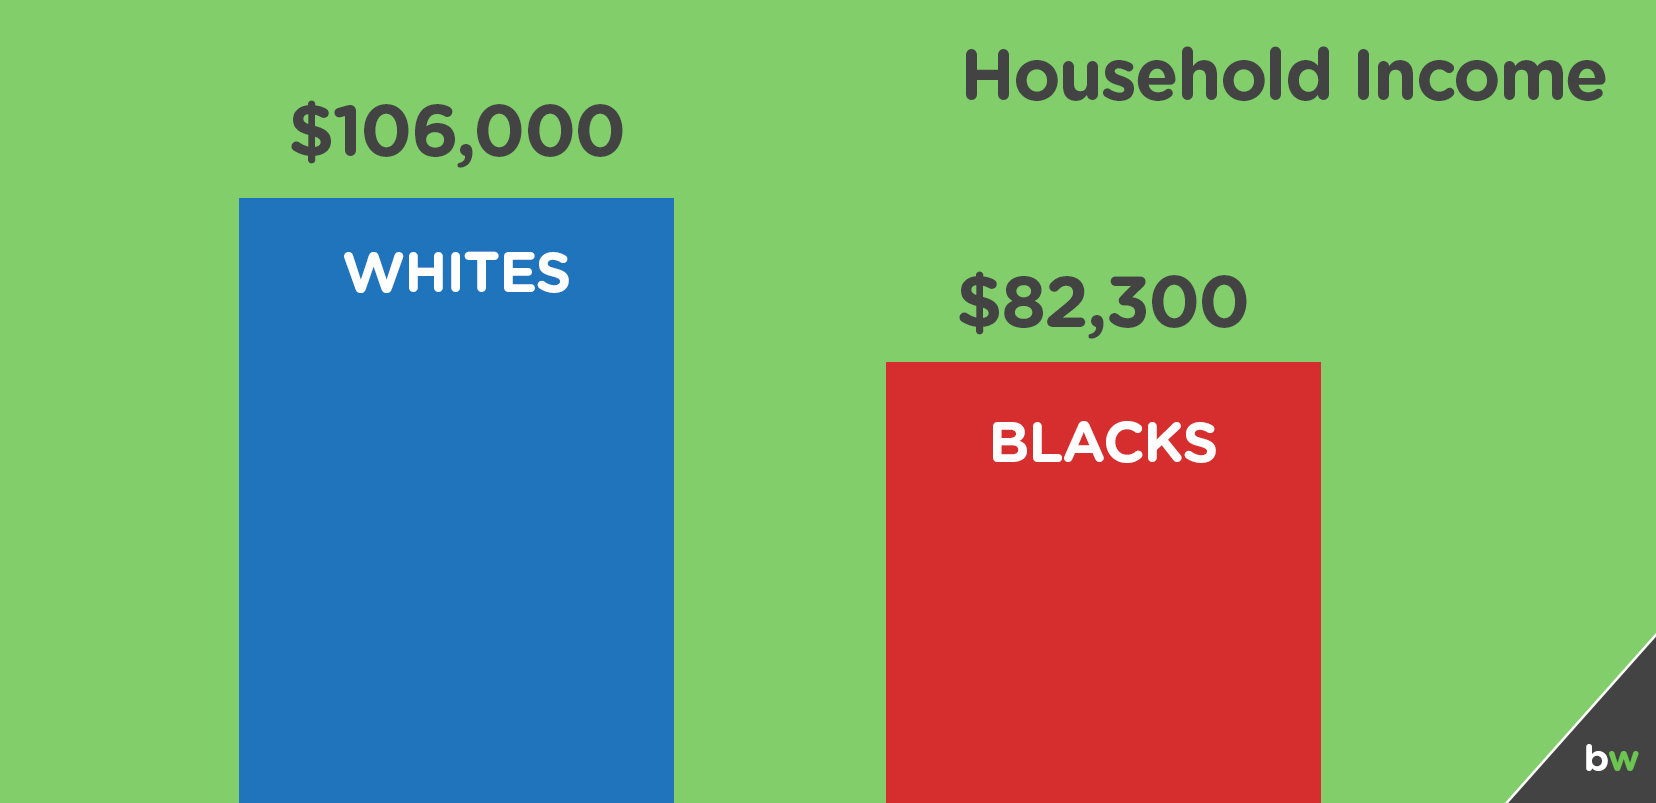 bar graph representing household income, with two bars, one red and one blue on top of a green background